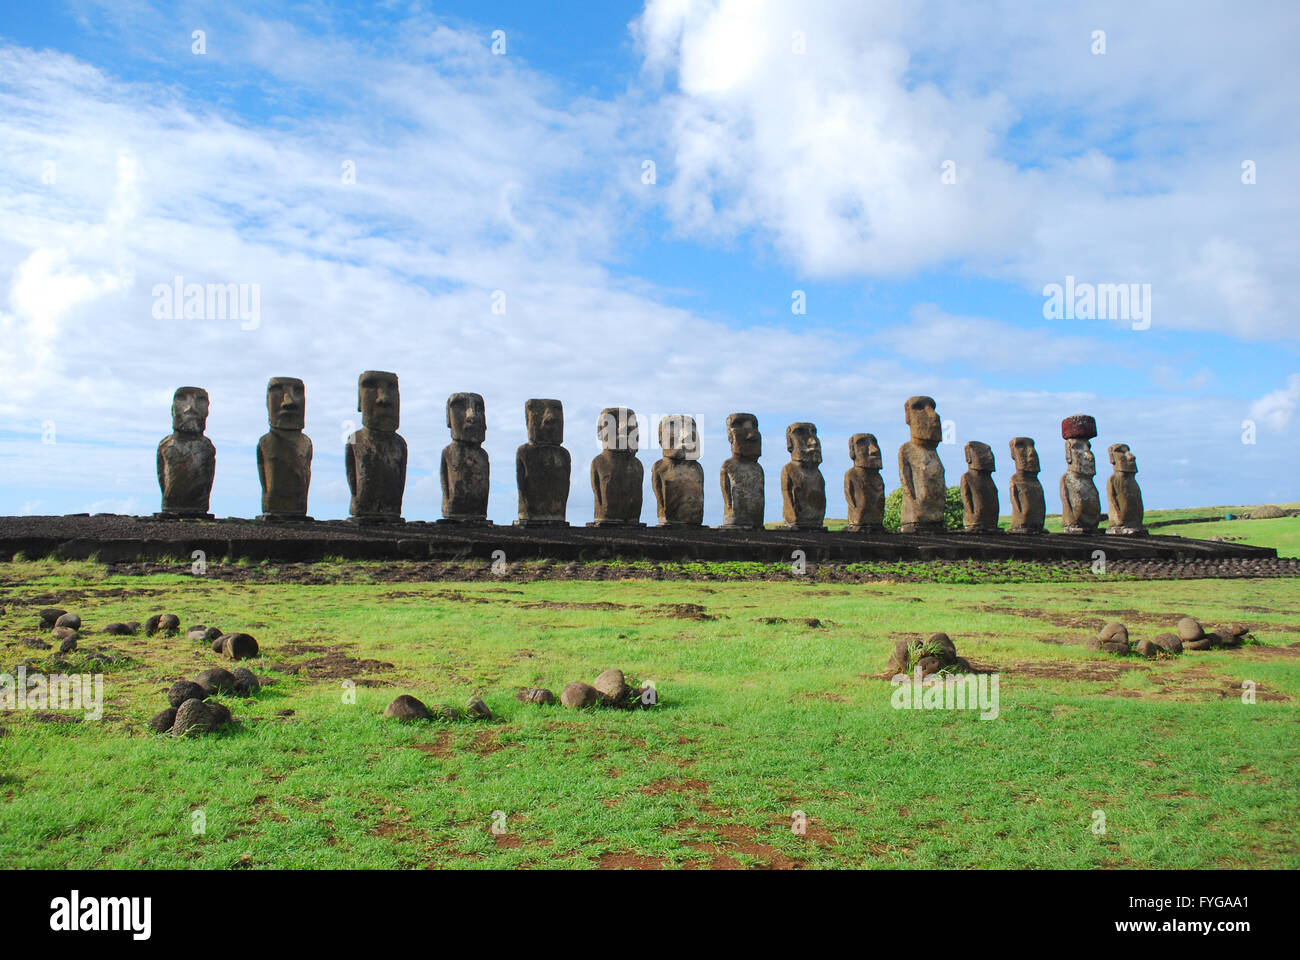 Moai statues at  Ahu Tongariki, Easter Island, Chile - Stock Image